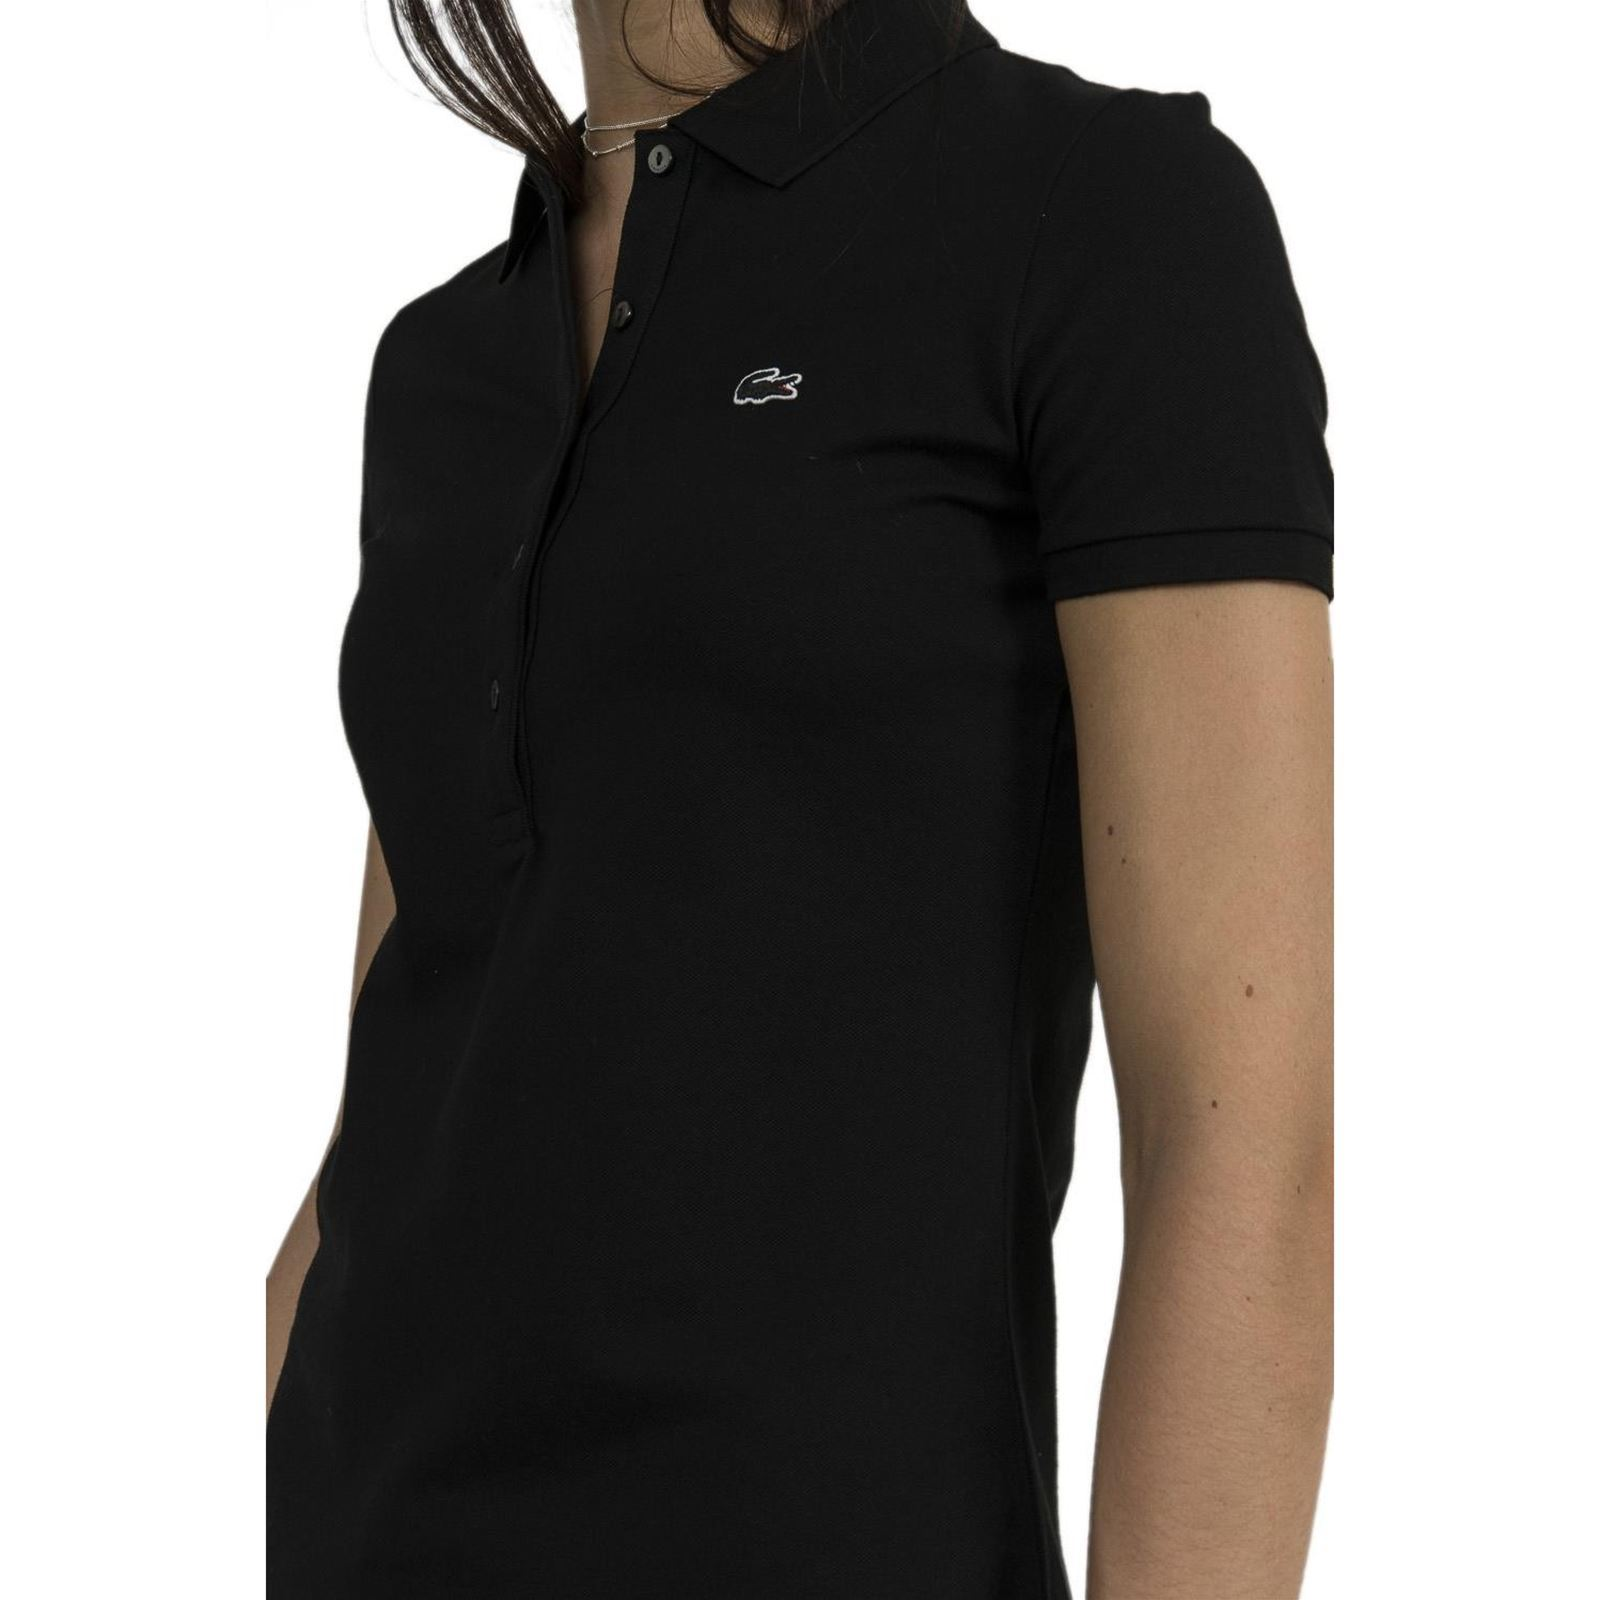 Noir Femme V Lacoste Manches Courtes Pf7845Polo EHD9I2W